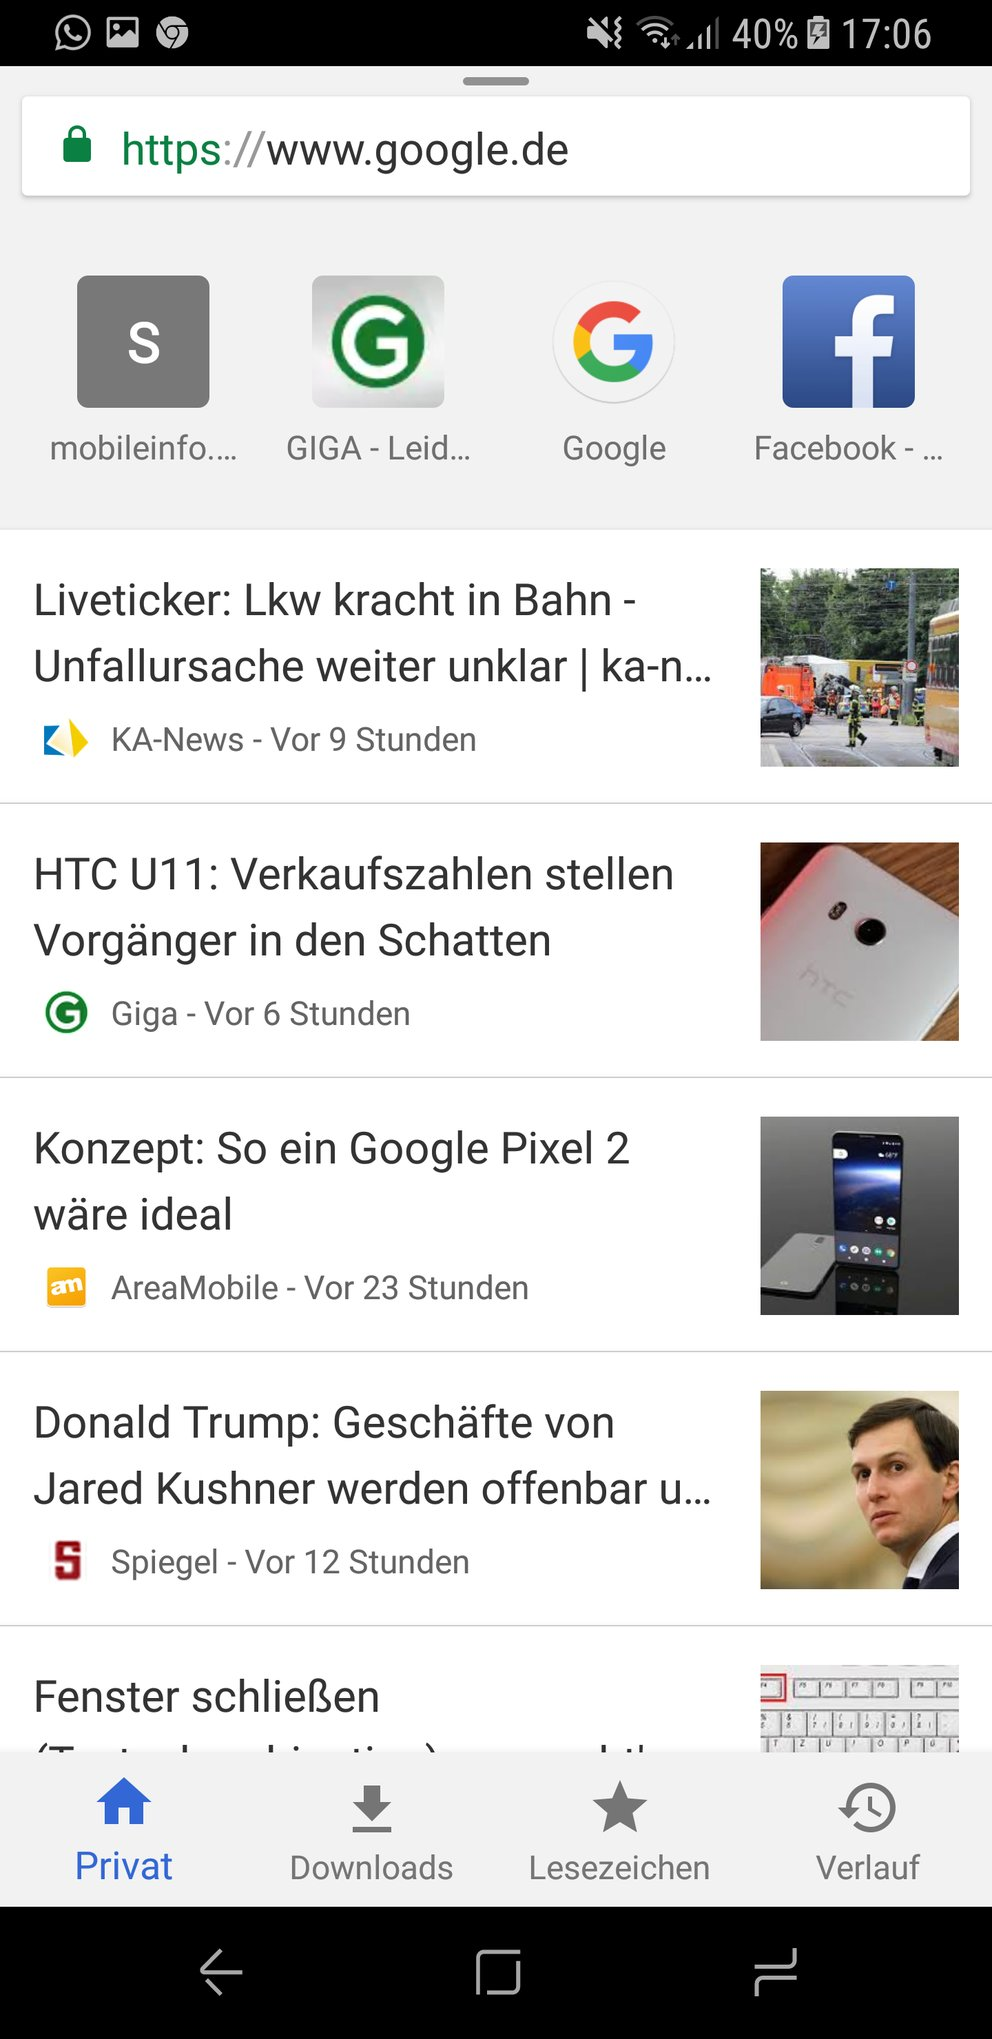 Chrome-Android-Dev-Bar-unten-4